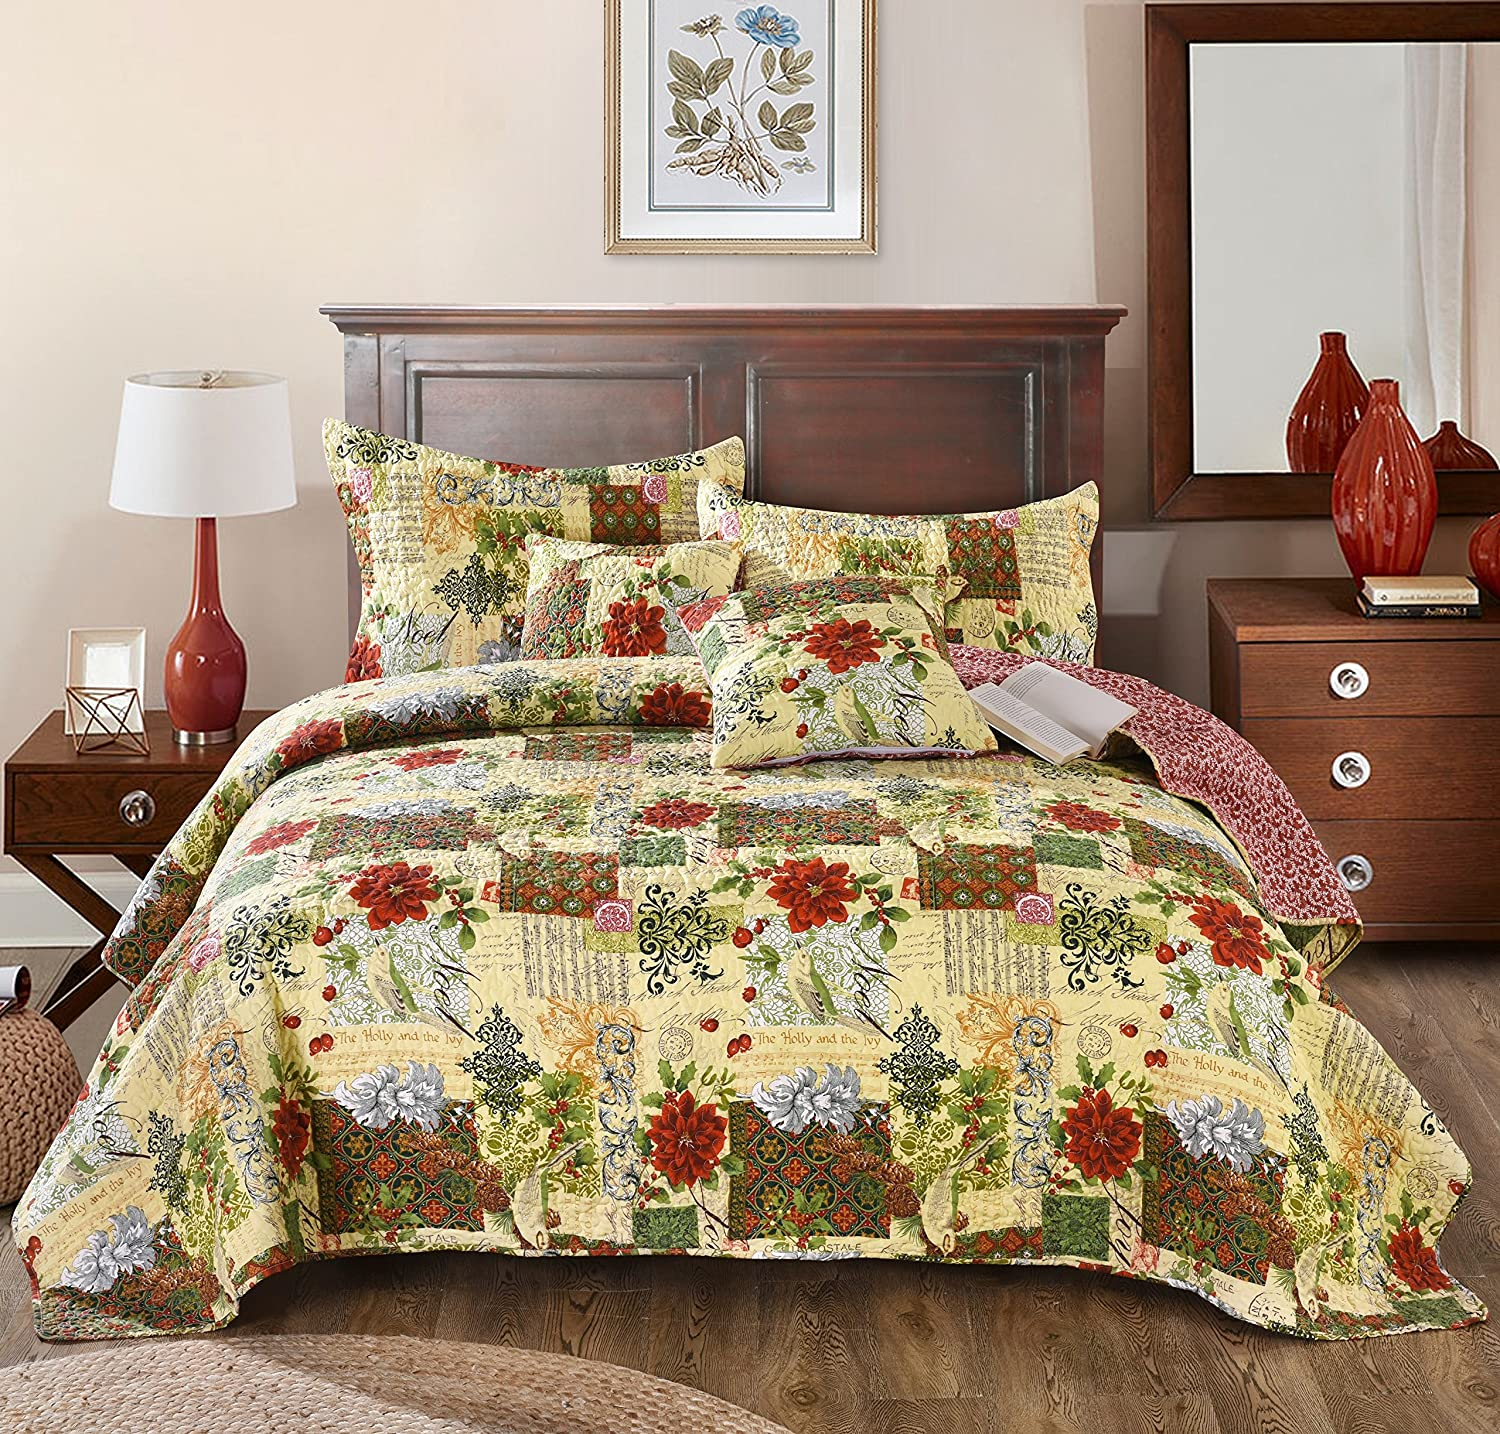 Tache Home Fashion Festive The Holly and The Ivy Poinsettia Patchwork Quilted Coverlet Bedspread Set - Bright Vibrant Multi Colorful Beige Red Green Floral